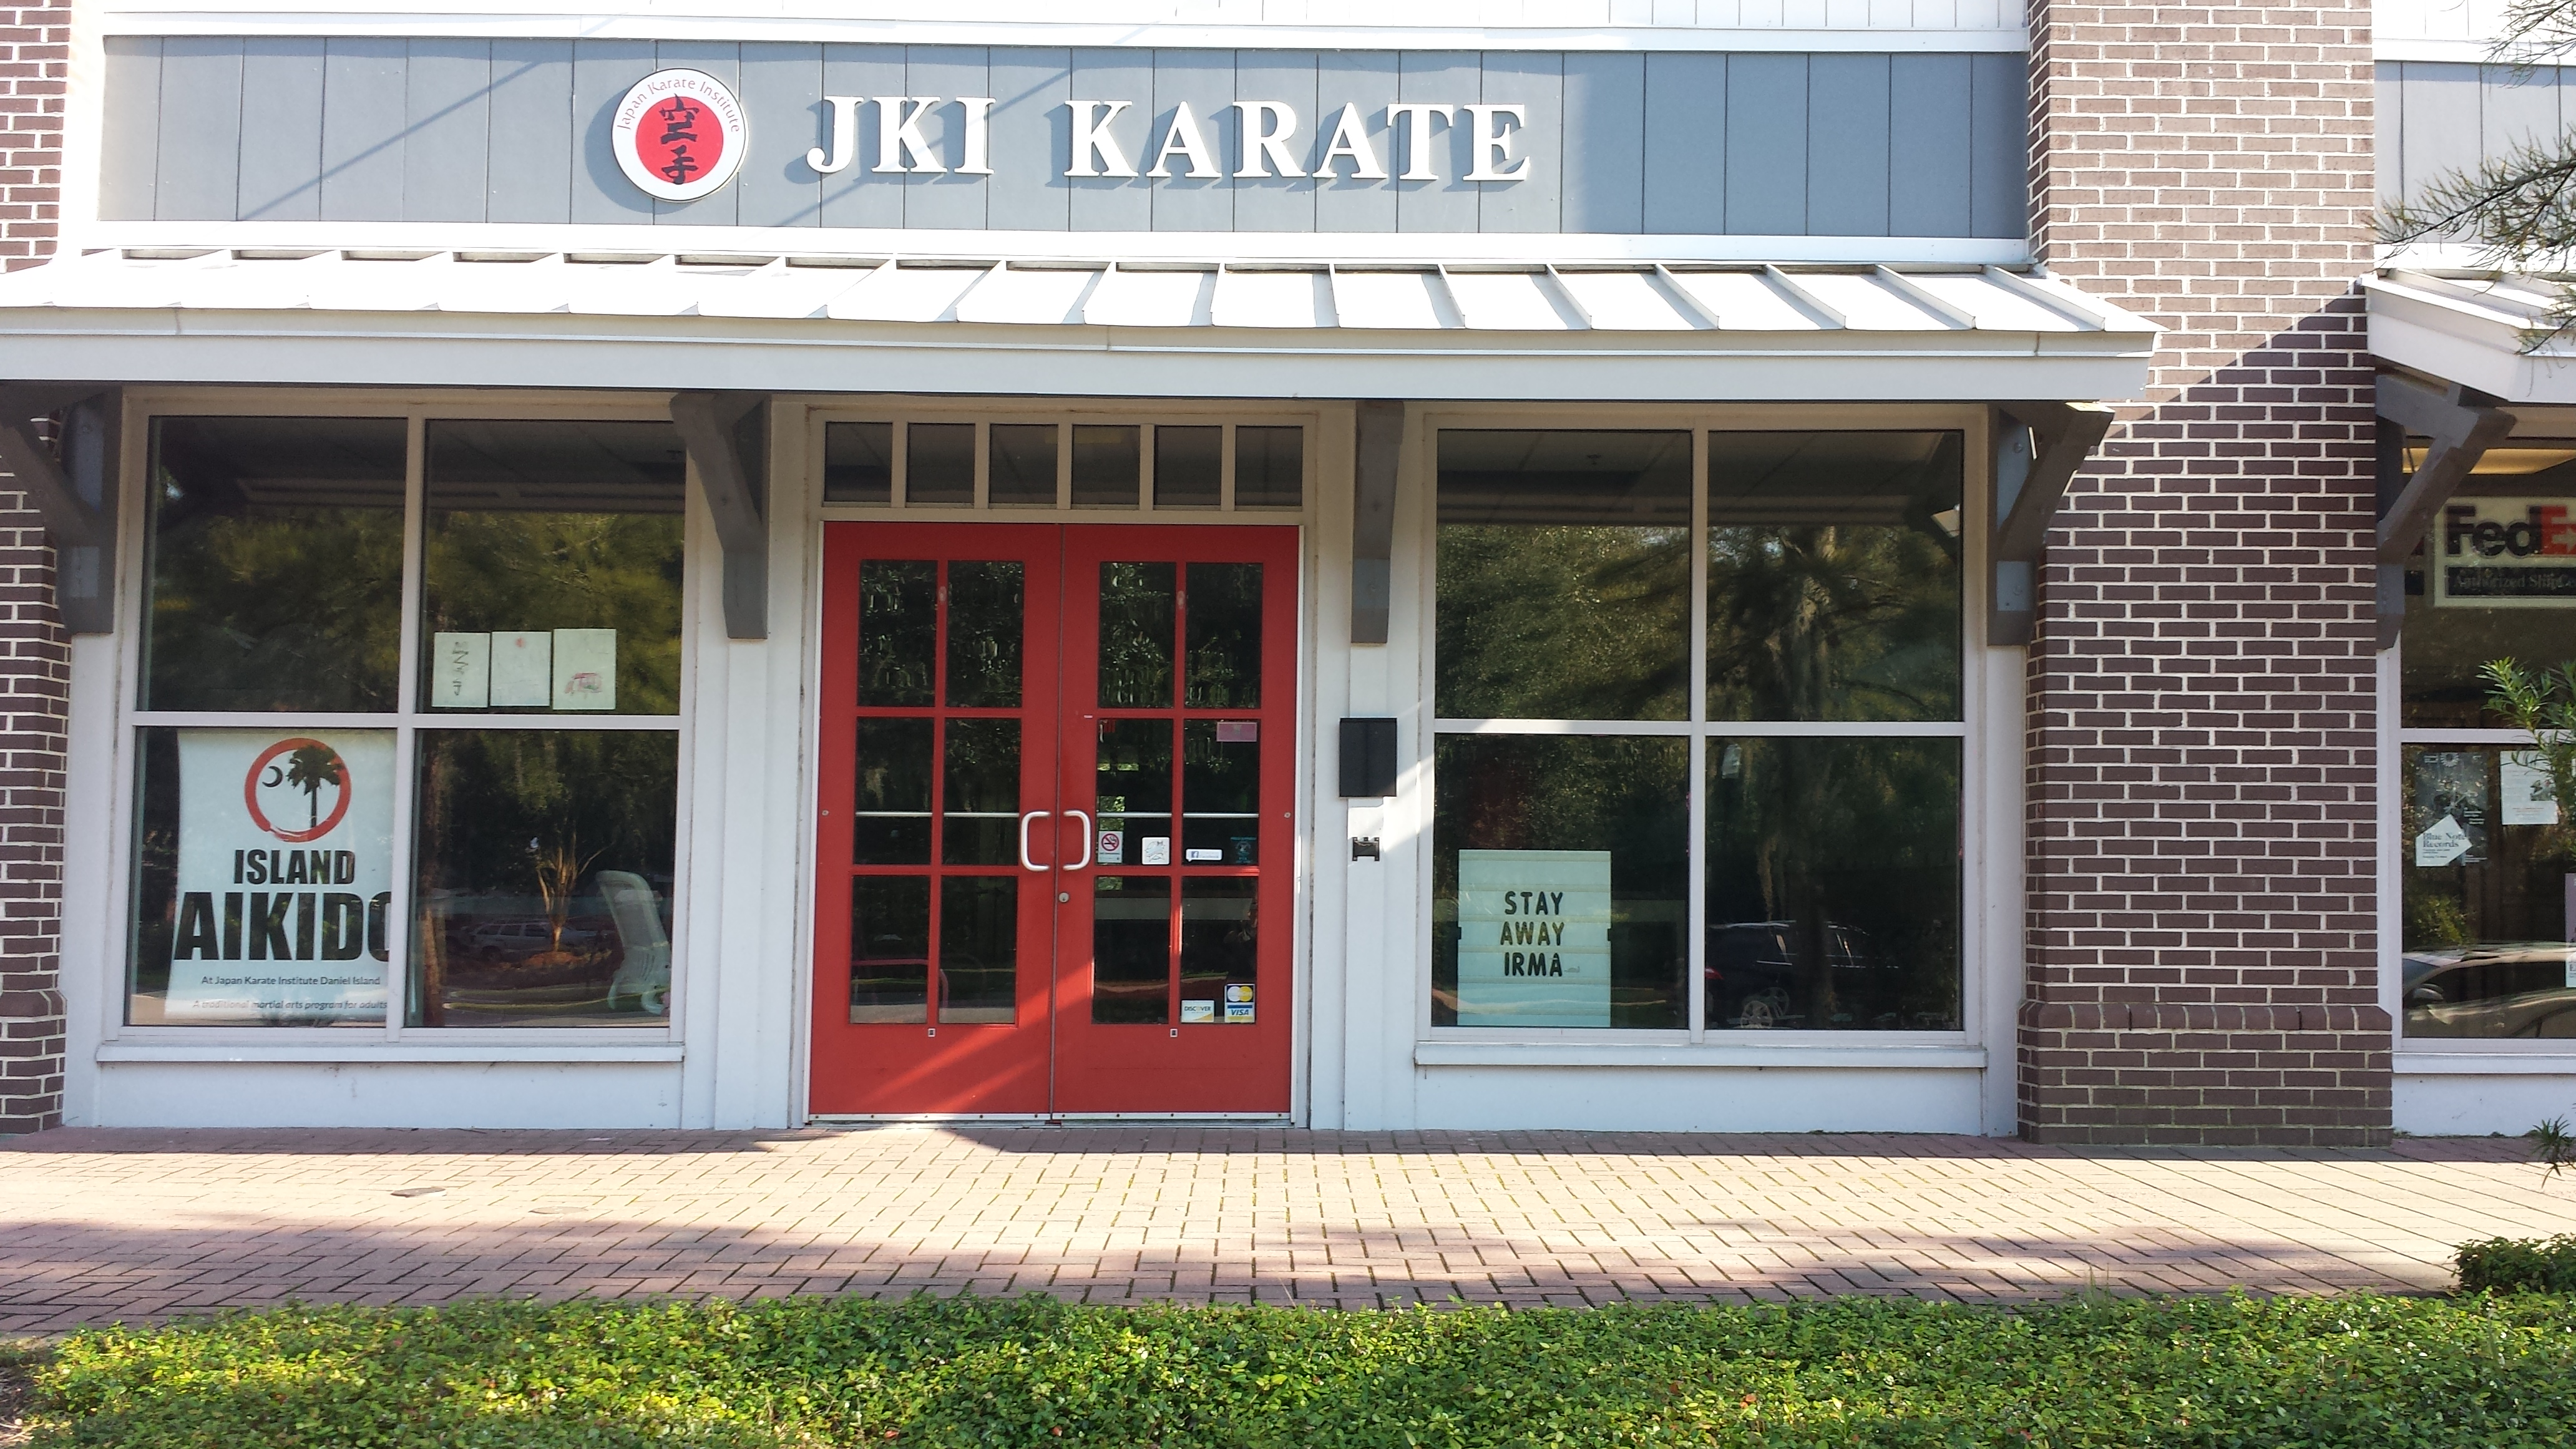 Japan Karate Institute displays a message for Irma!